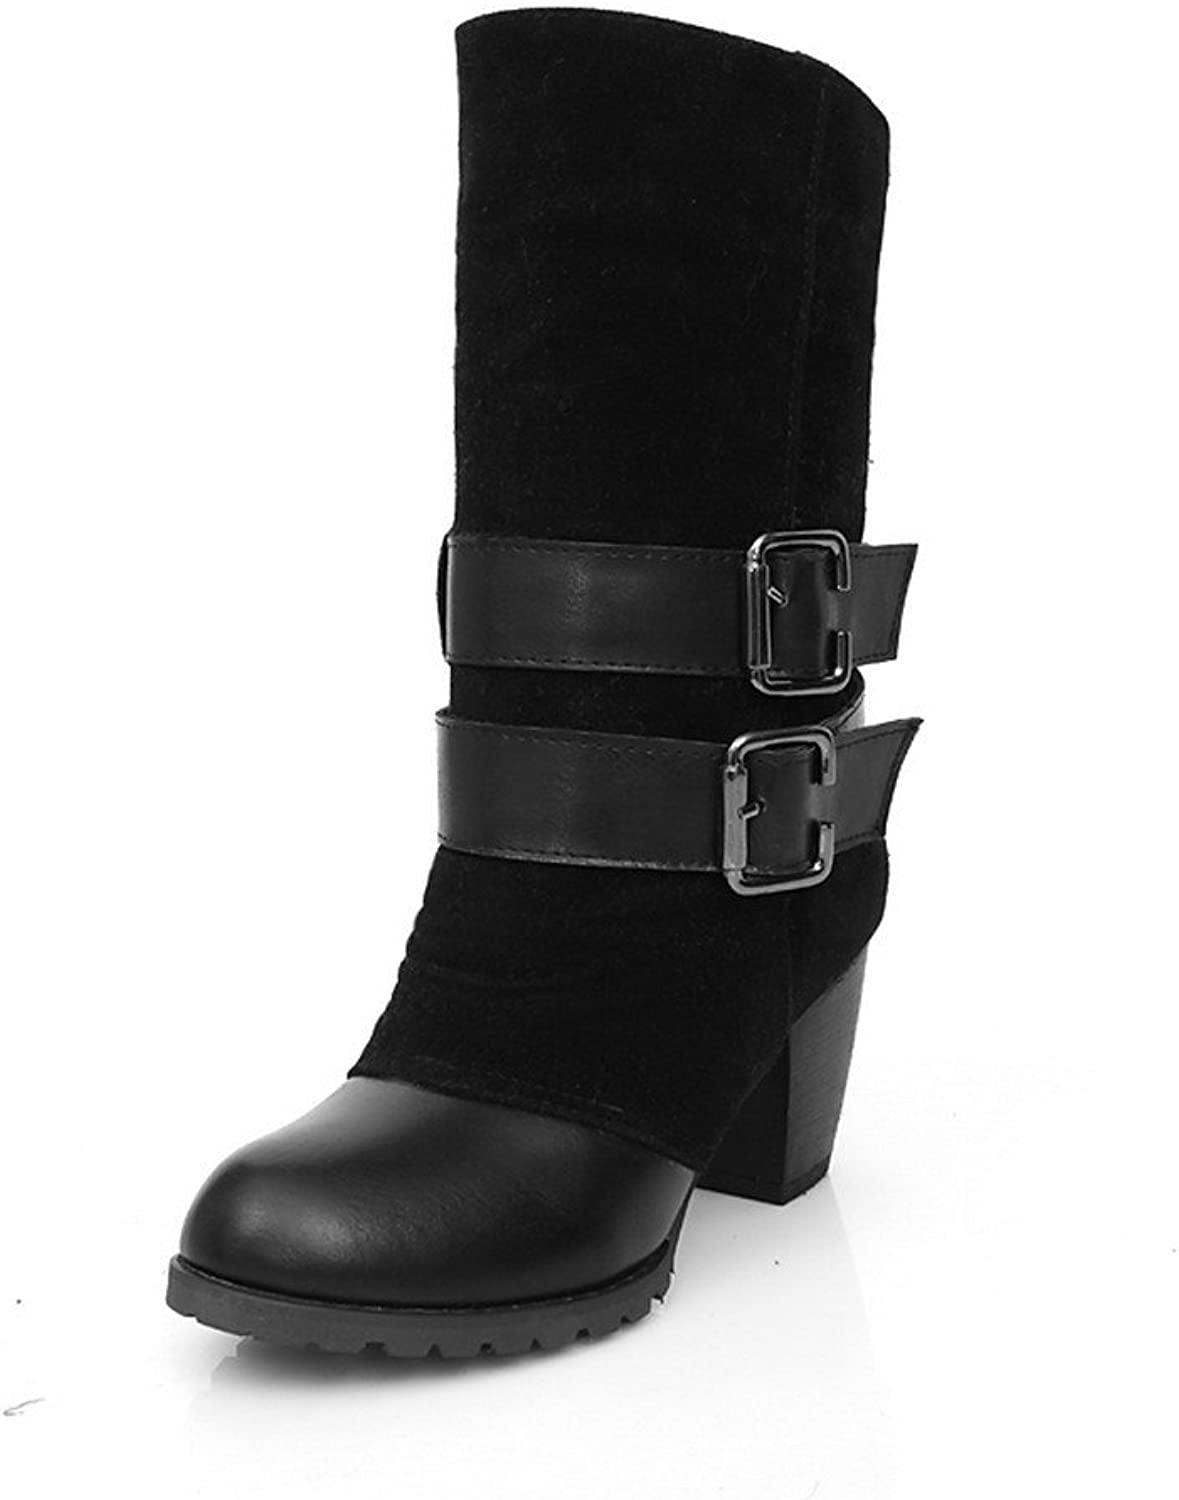 WeiPoot Womens Round Closed Toe High Heels PU Frosted Assorted colors Boots with Chunky Heels, Black, 7.5 B(M) US